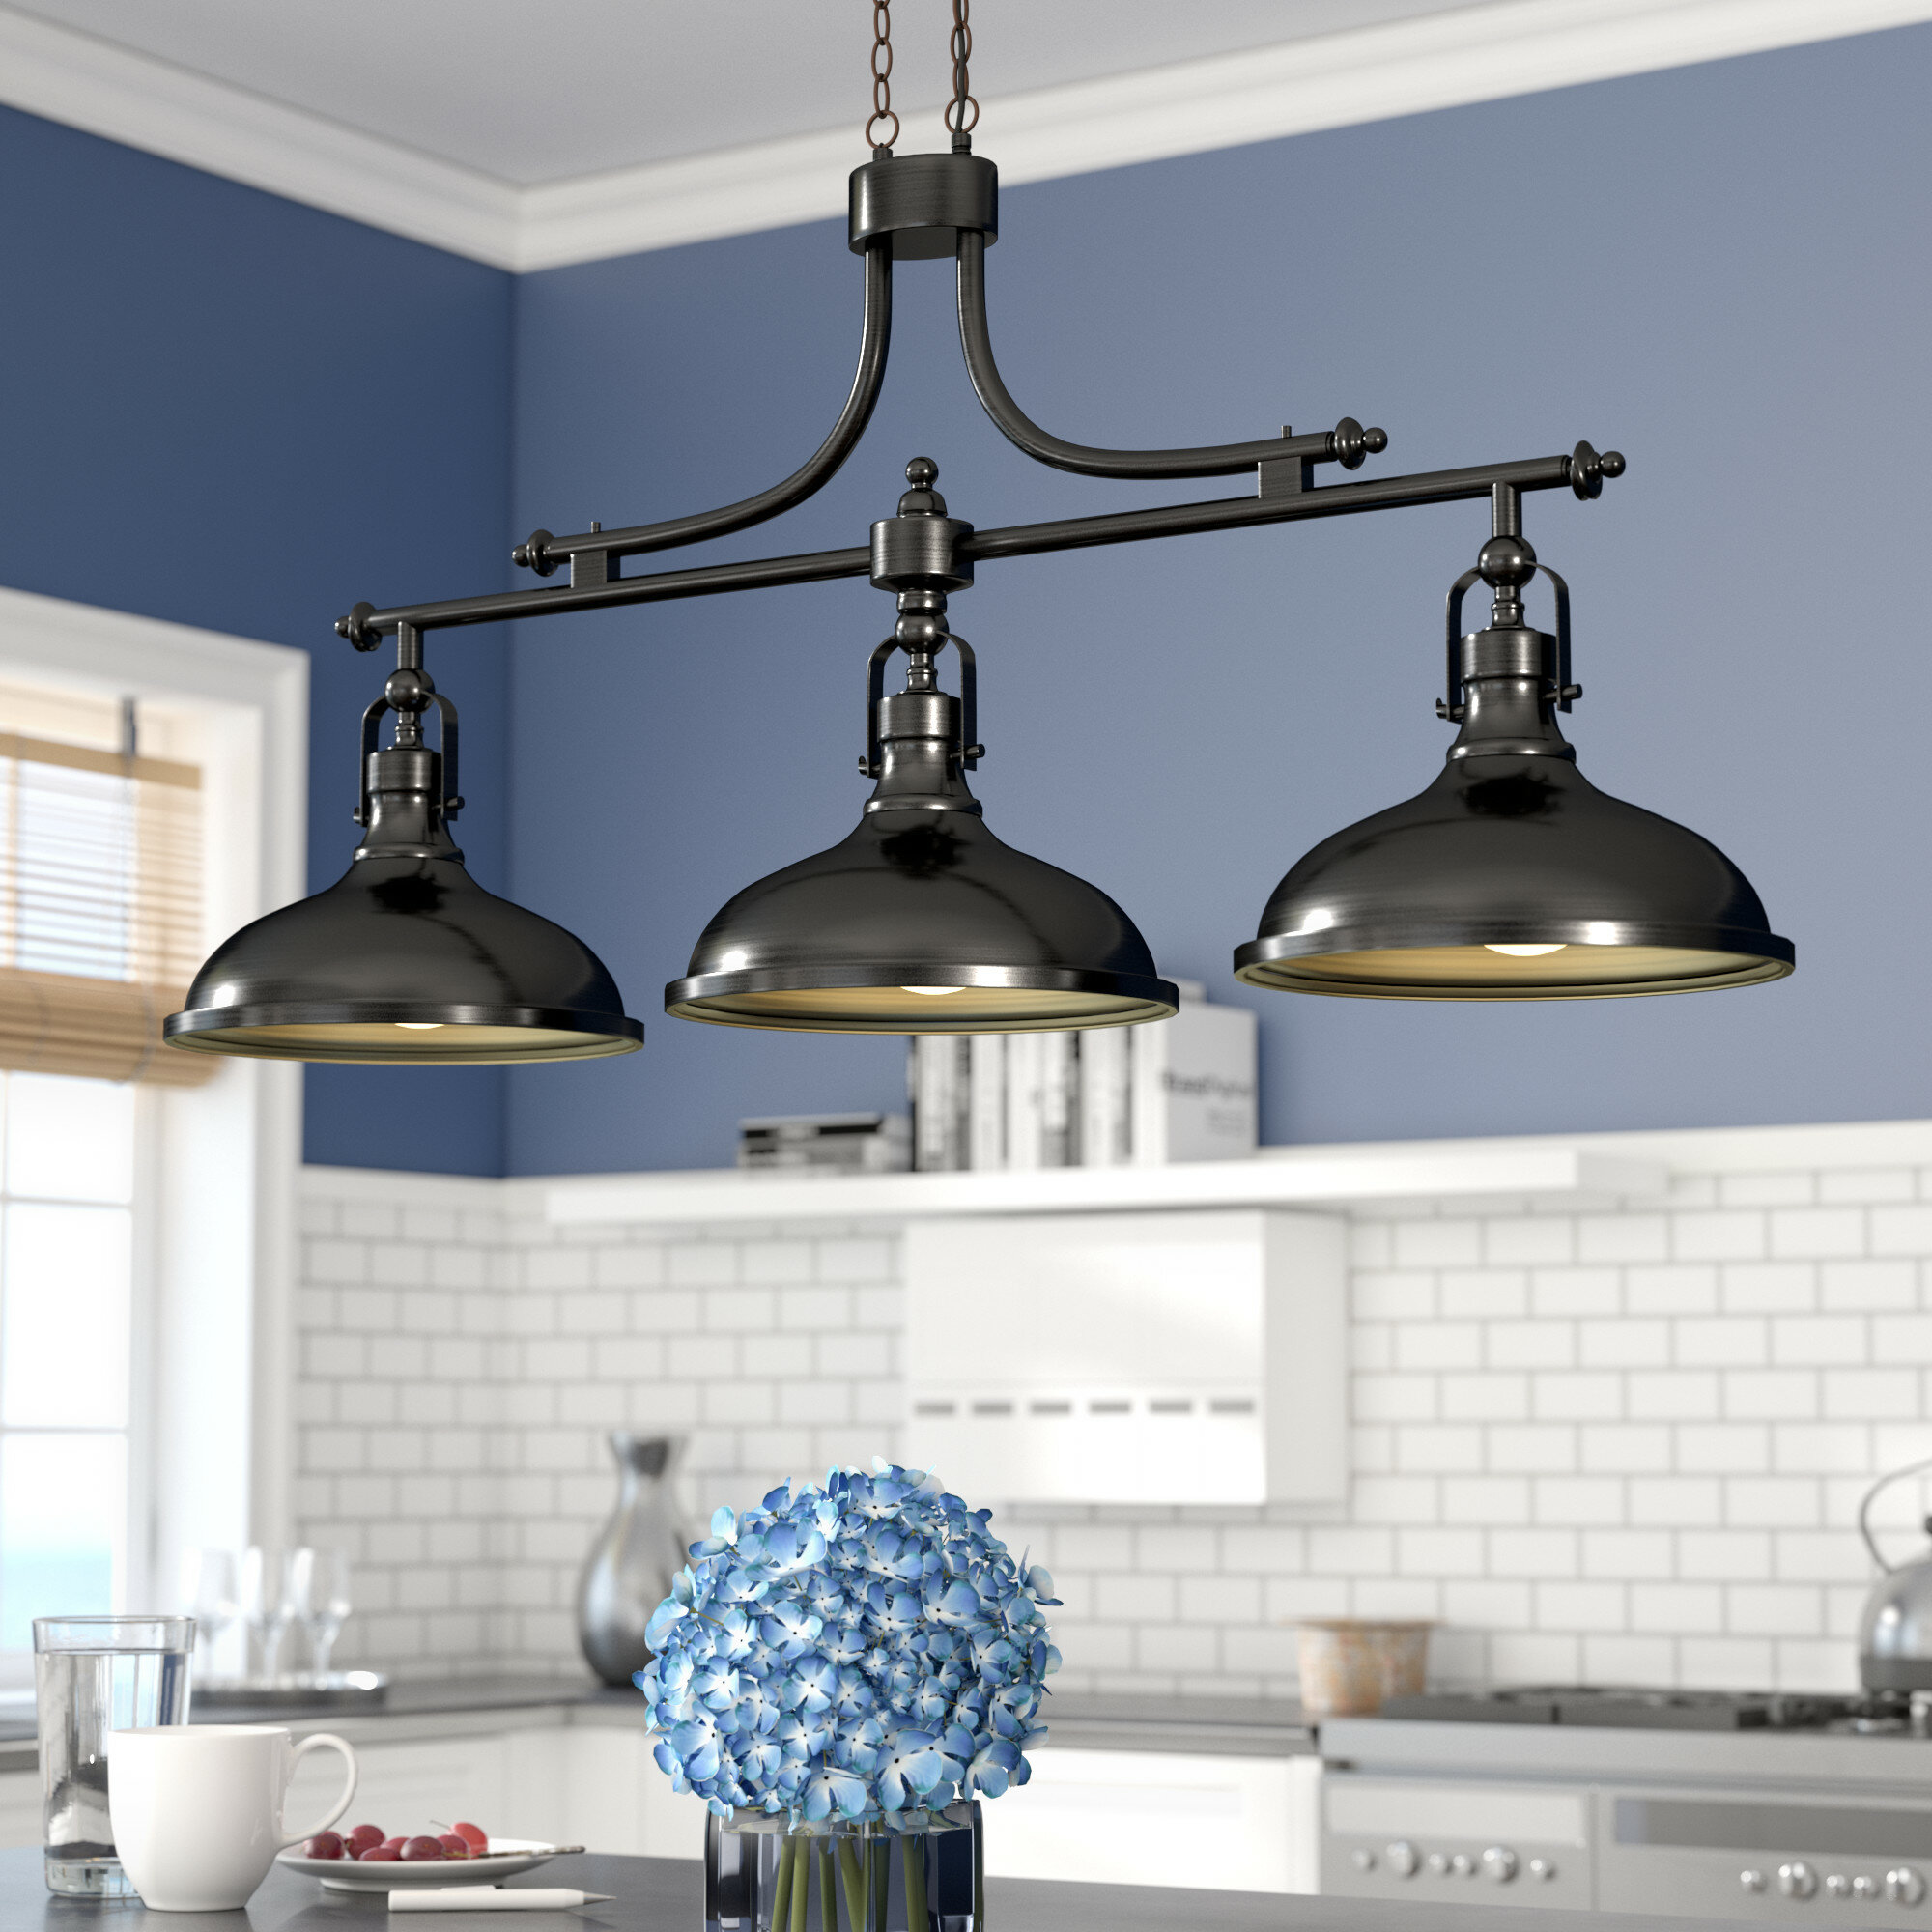 3 light kitchen island pendant black wayfair beachcrest home martinique 3light kitchen island pendant reviews